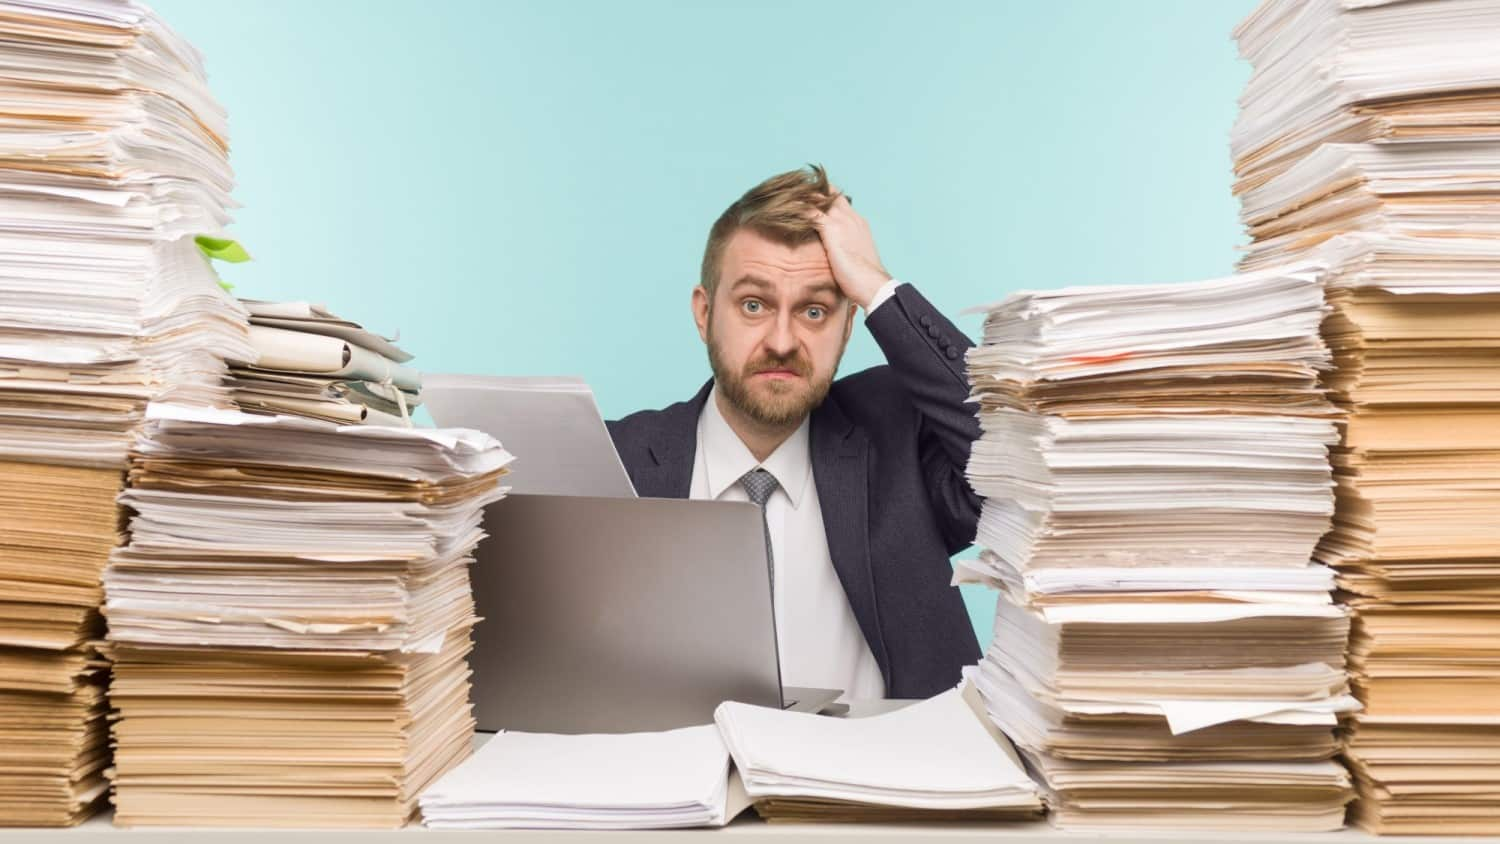 Hire a bookkeeper to take care of your administration